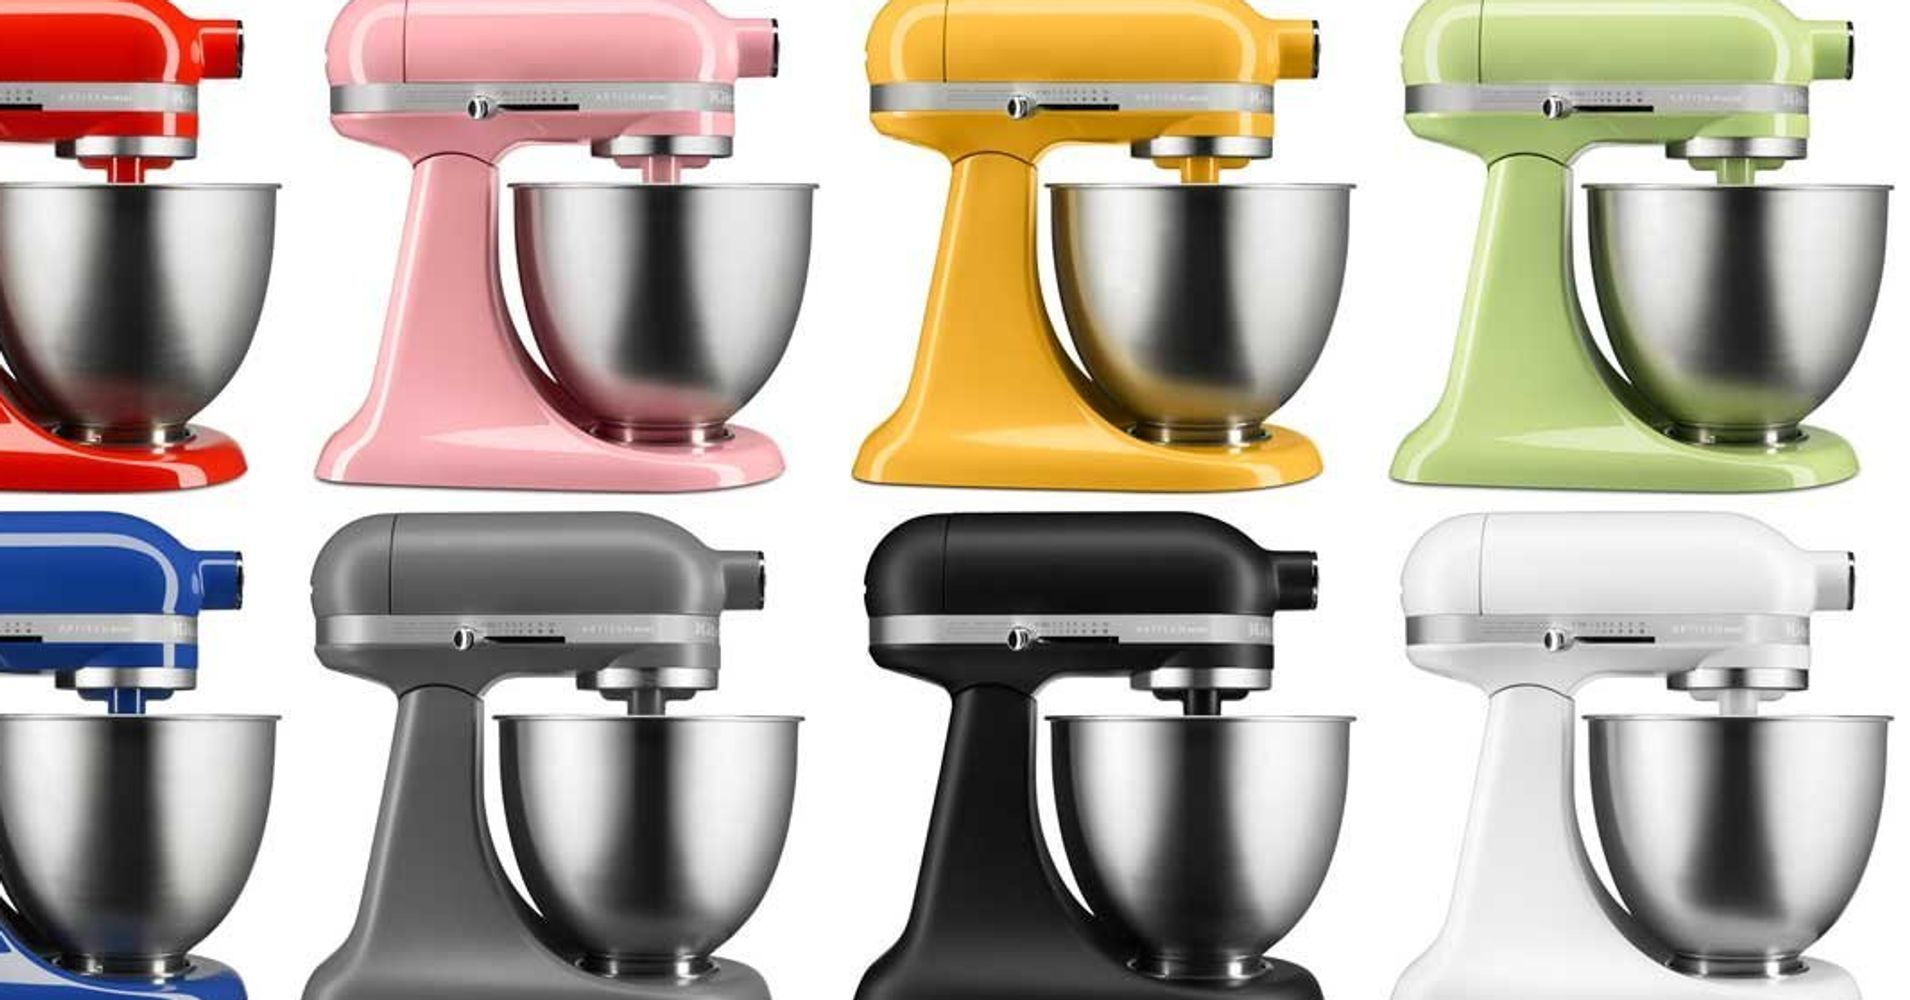 New Kitchenaid Mini Mixer Cookware Hungry Onion The Best News For People With Tiny Kitchens